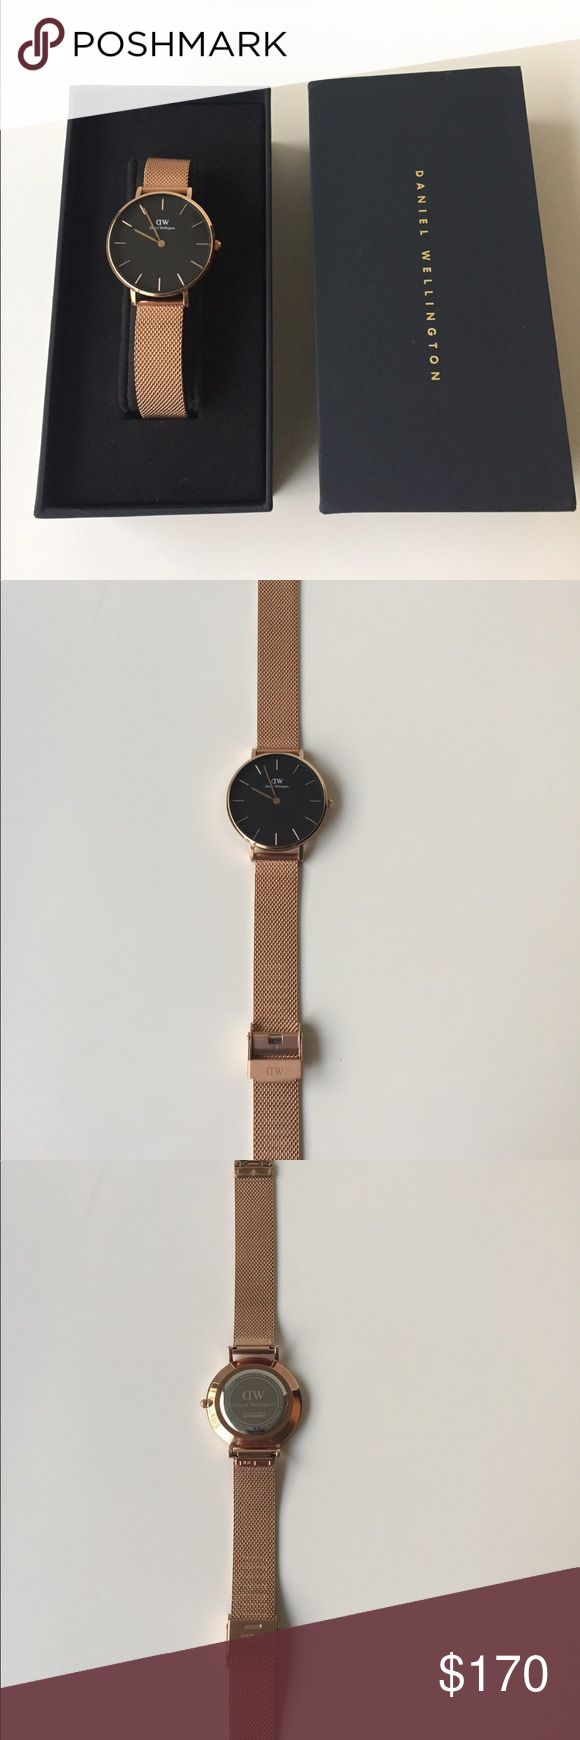 Daniel Wellington Classic Petite Melrose Daniel Wellington Classic Petite 32MM in Rose Gold. Worn a couple of times with light scratch on the back face of the watch. Still in excellent condition. Comes with a brand new classic petite reading black croc strap made from genuine Italian leather. Strap Width 14MM link color is rose gold. Everything comes in original box and tool to adjust & change straps. Daniel Wellington Accessories Watches